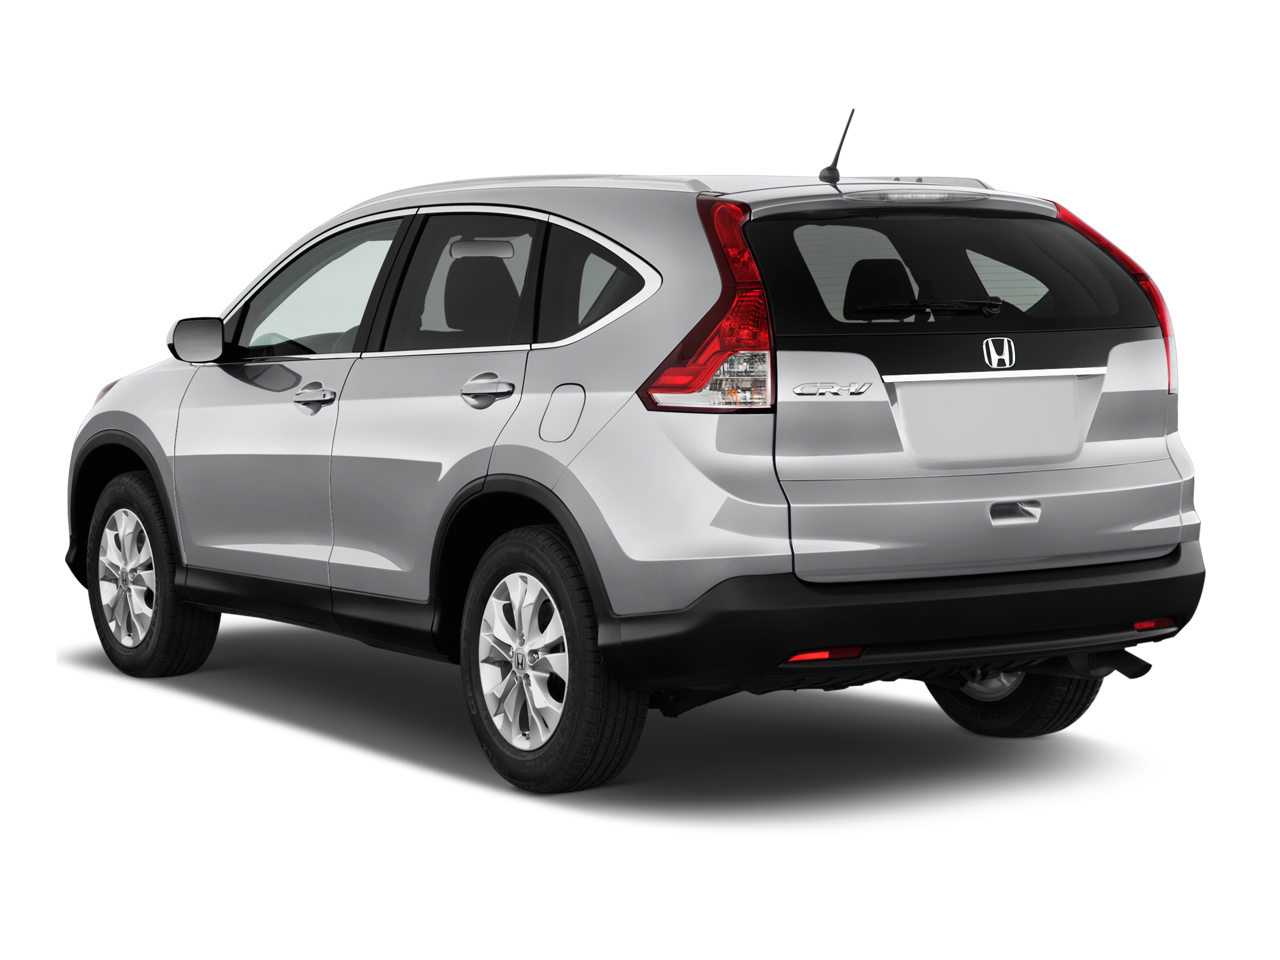 2013 Honda Cr V Review Ratings Specs Prices And Photos